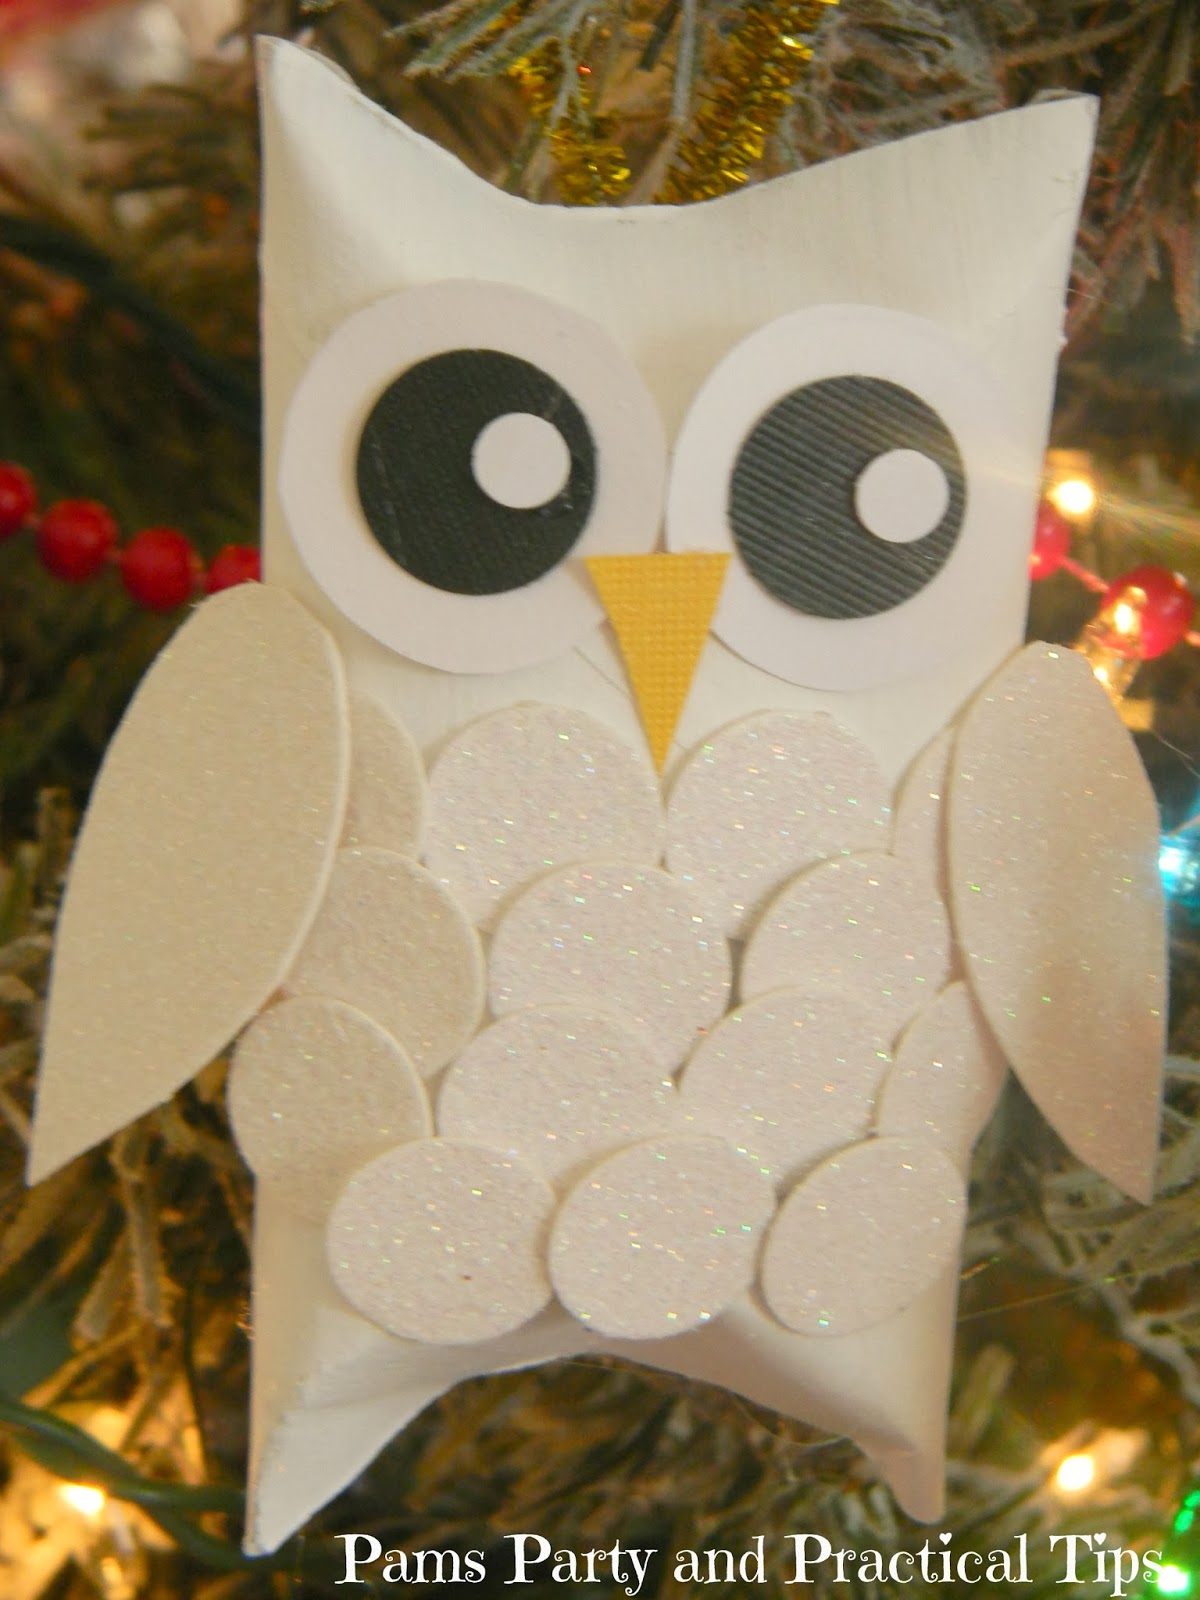 Pams party practical tips snow owl ornaments snow owl ornaments jeuxipadfo Image collections